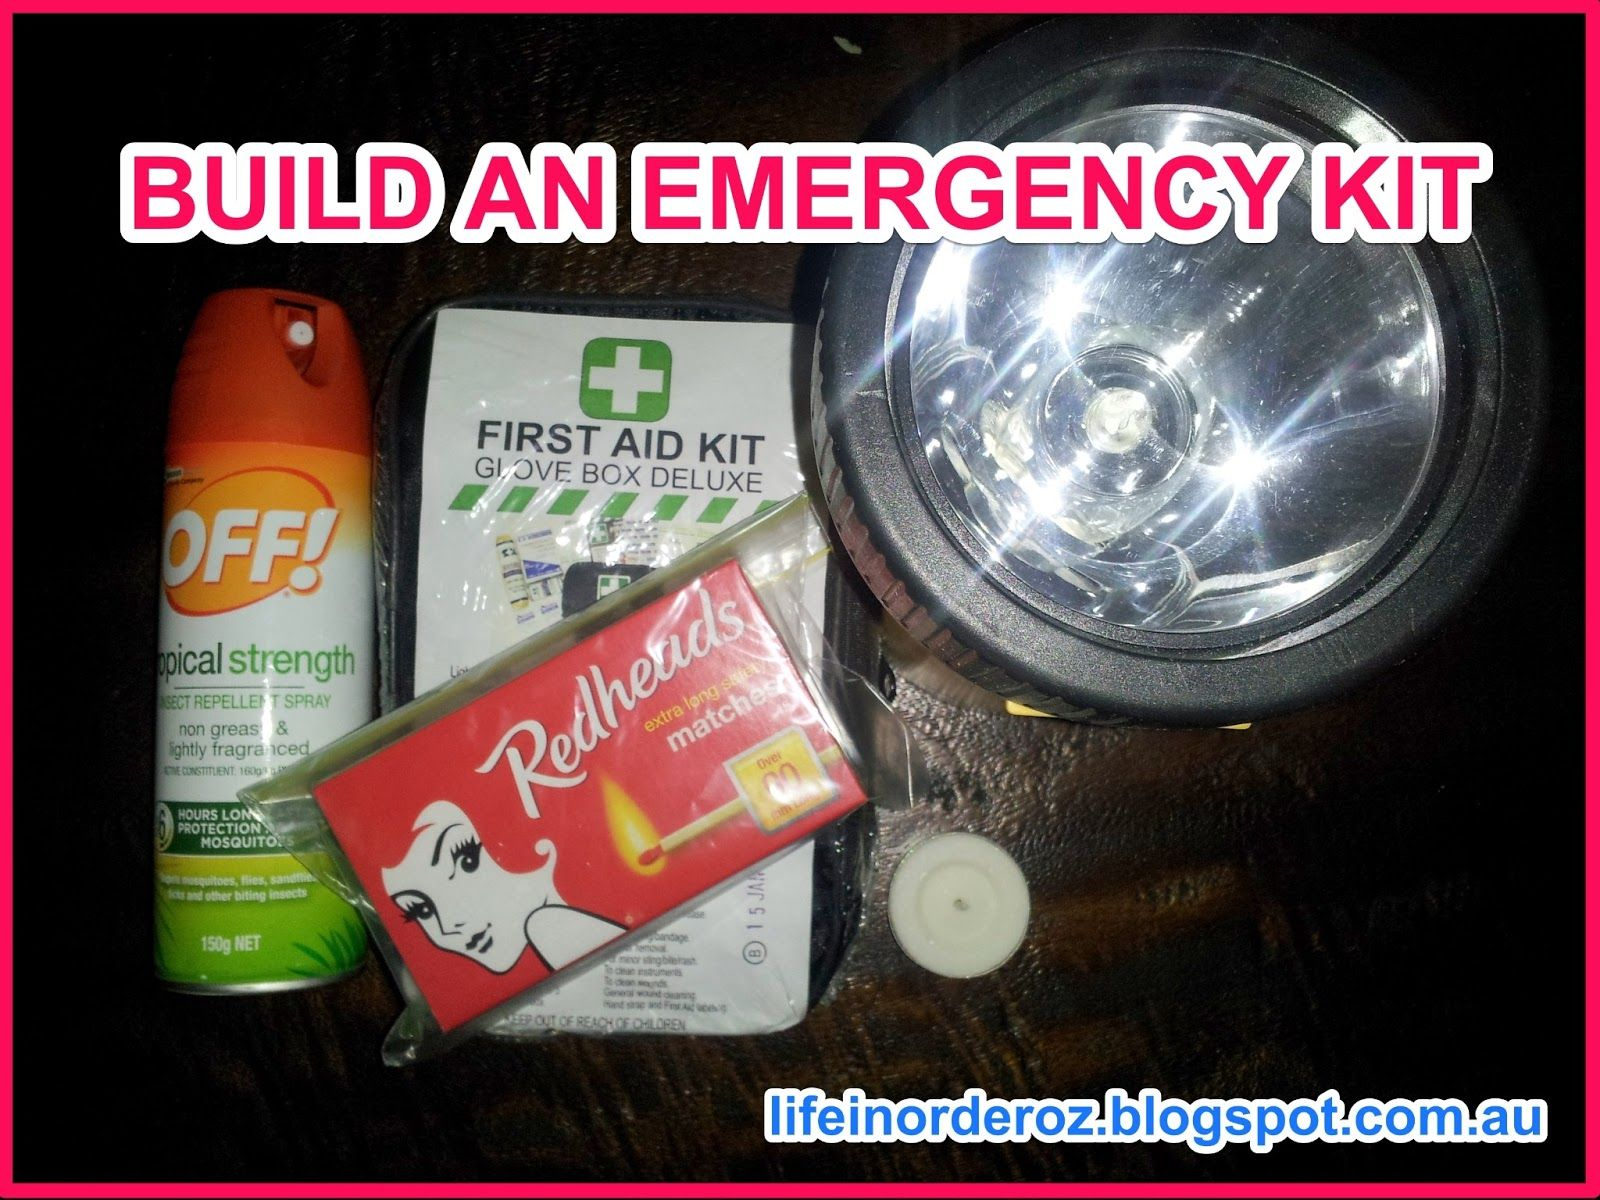 Life in order emergency kit list and ideas for natural disasters